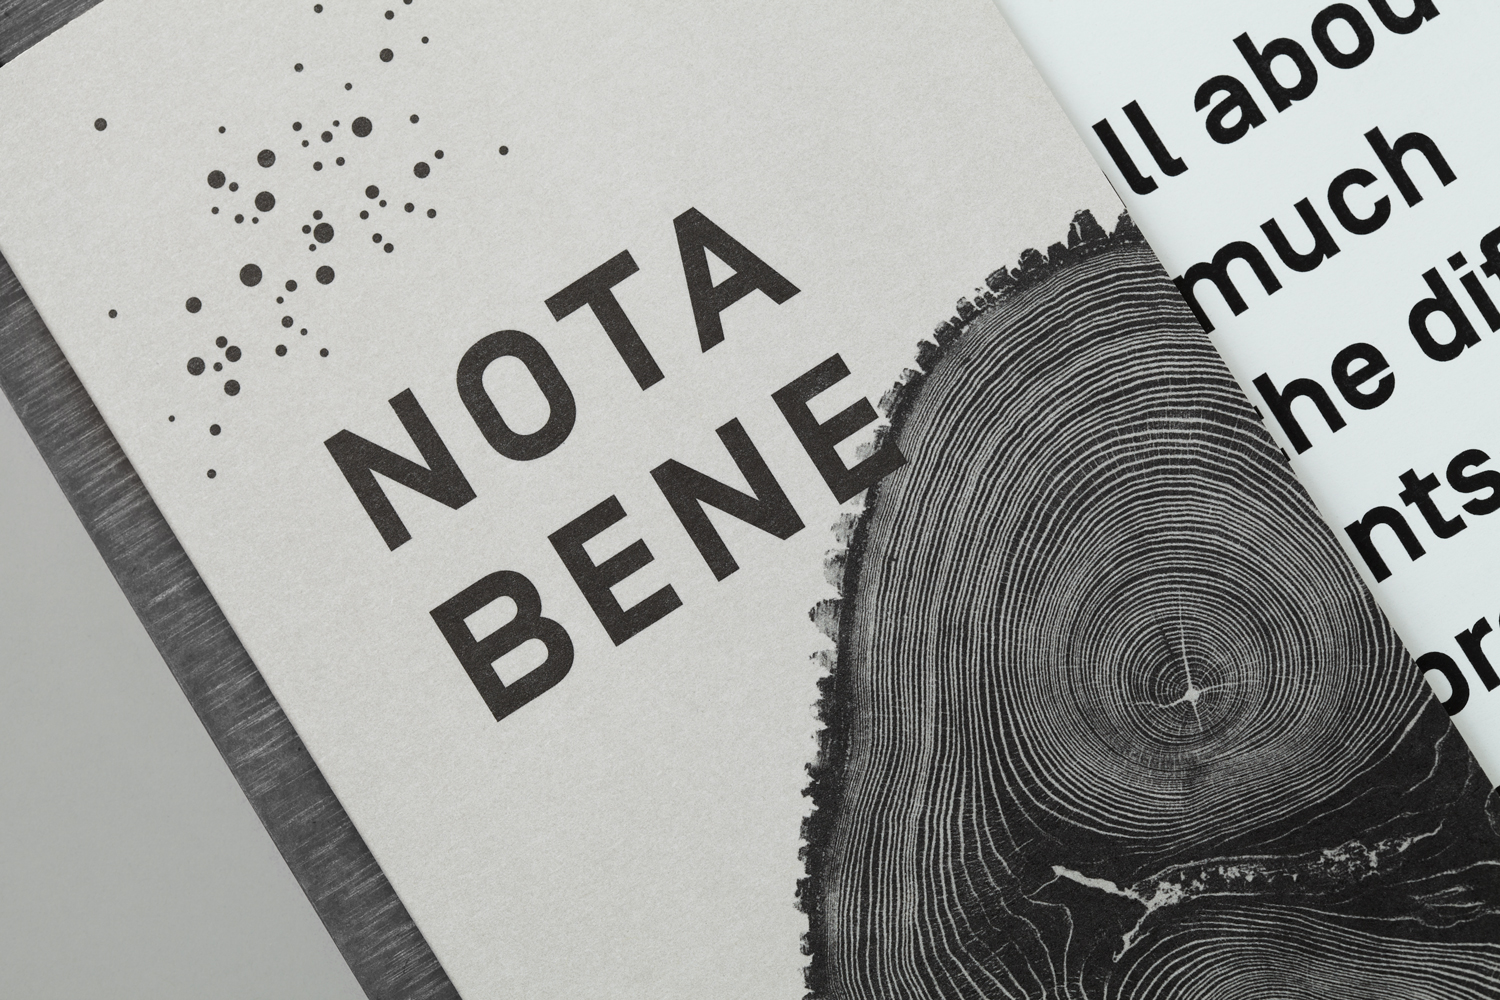 Branding for Toronto restaurant Nota Bene by graphic design studio Blok, Canada